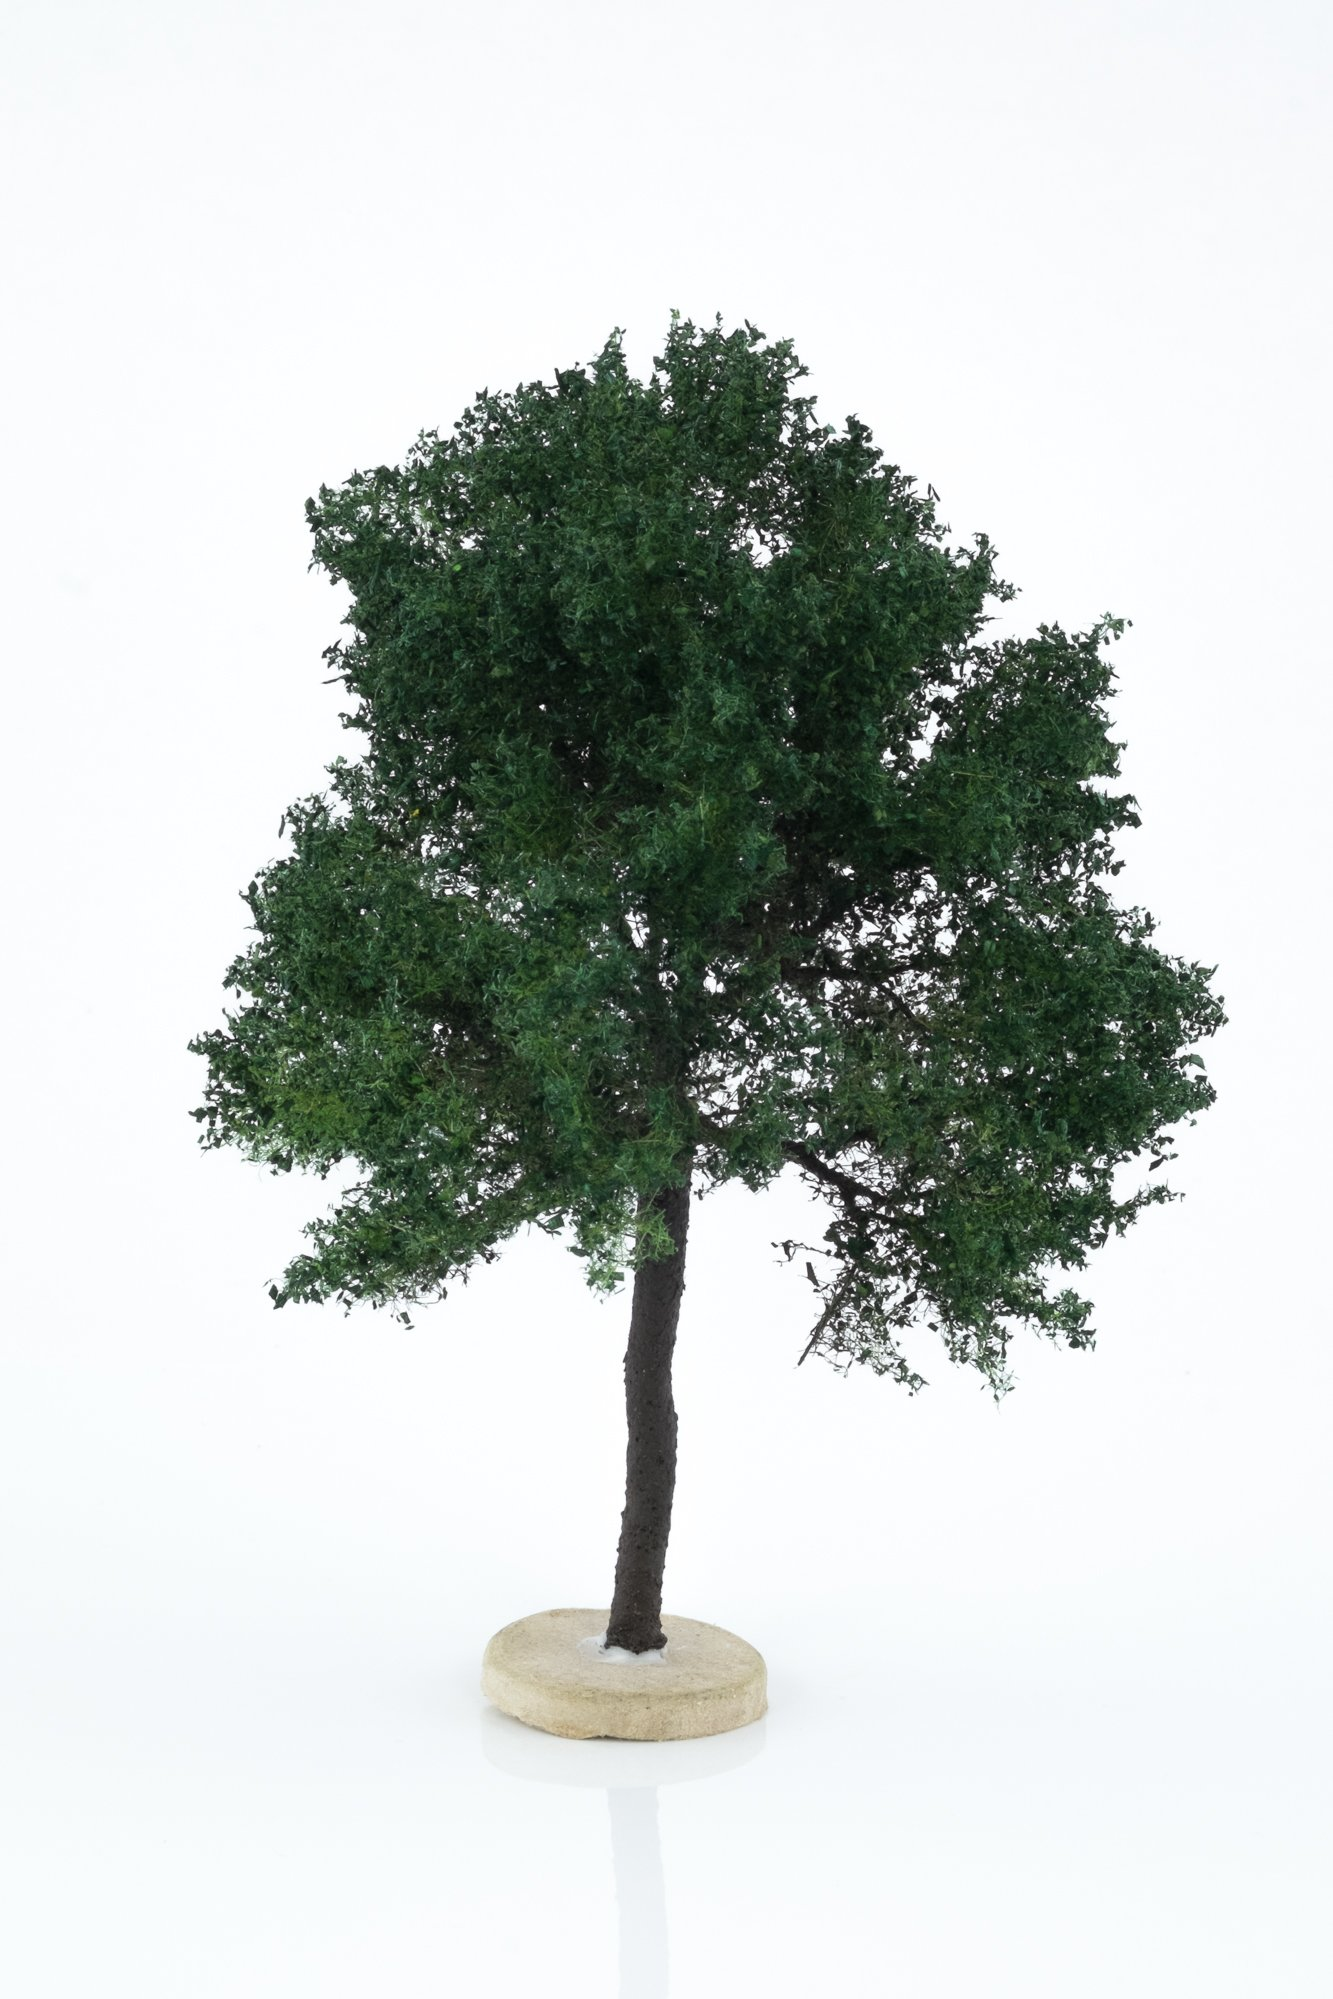 Hand-made, green, chestnut tree model. Size between 14 and 16 cm. Made from high quality model supplies by Primo Models.